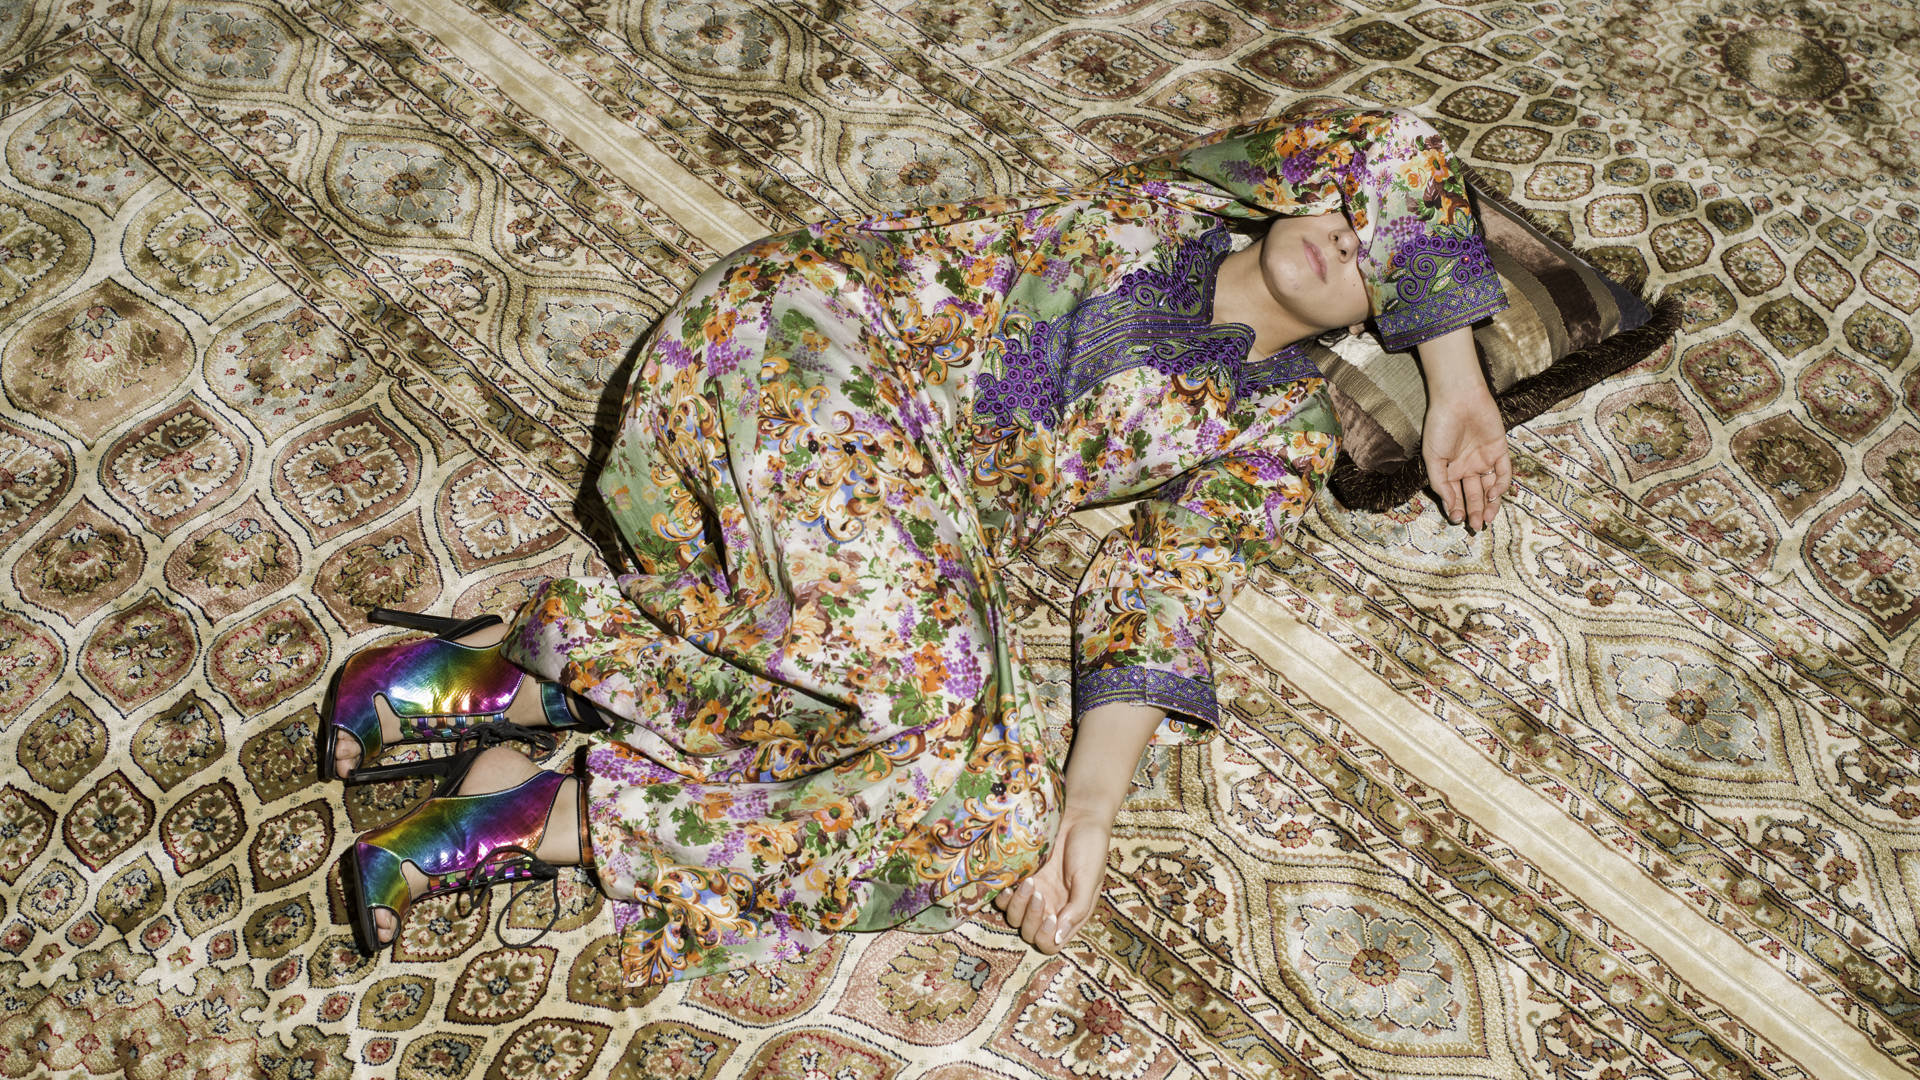 Farah Al Qasimi, 'M Napping on Carpet' (detail), 2016. Courtesy of the Artist, Helena Anrather (New York), and The Third Line (Dubai)